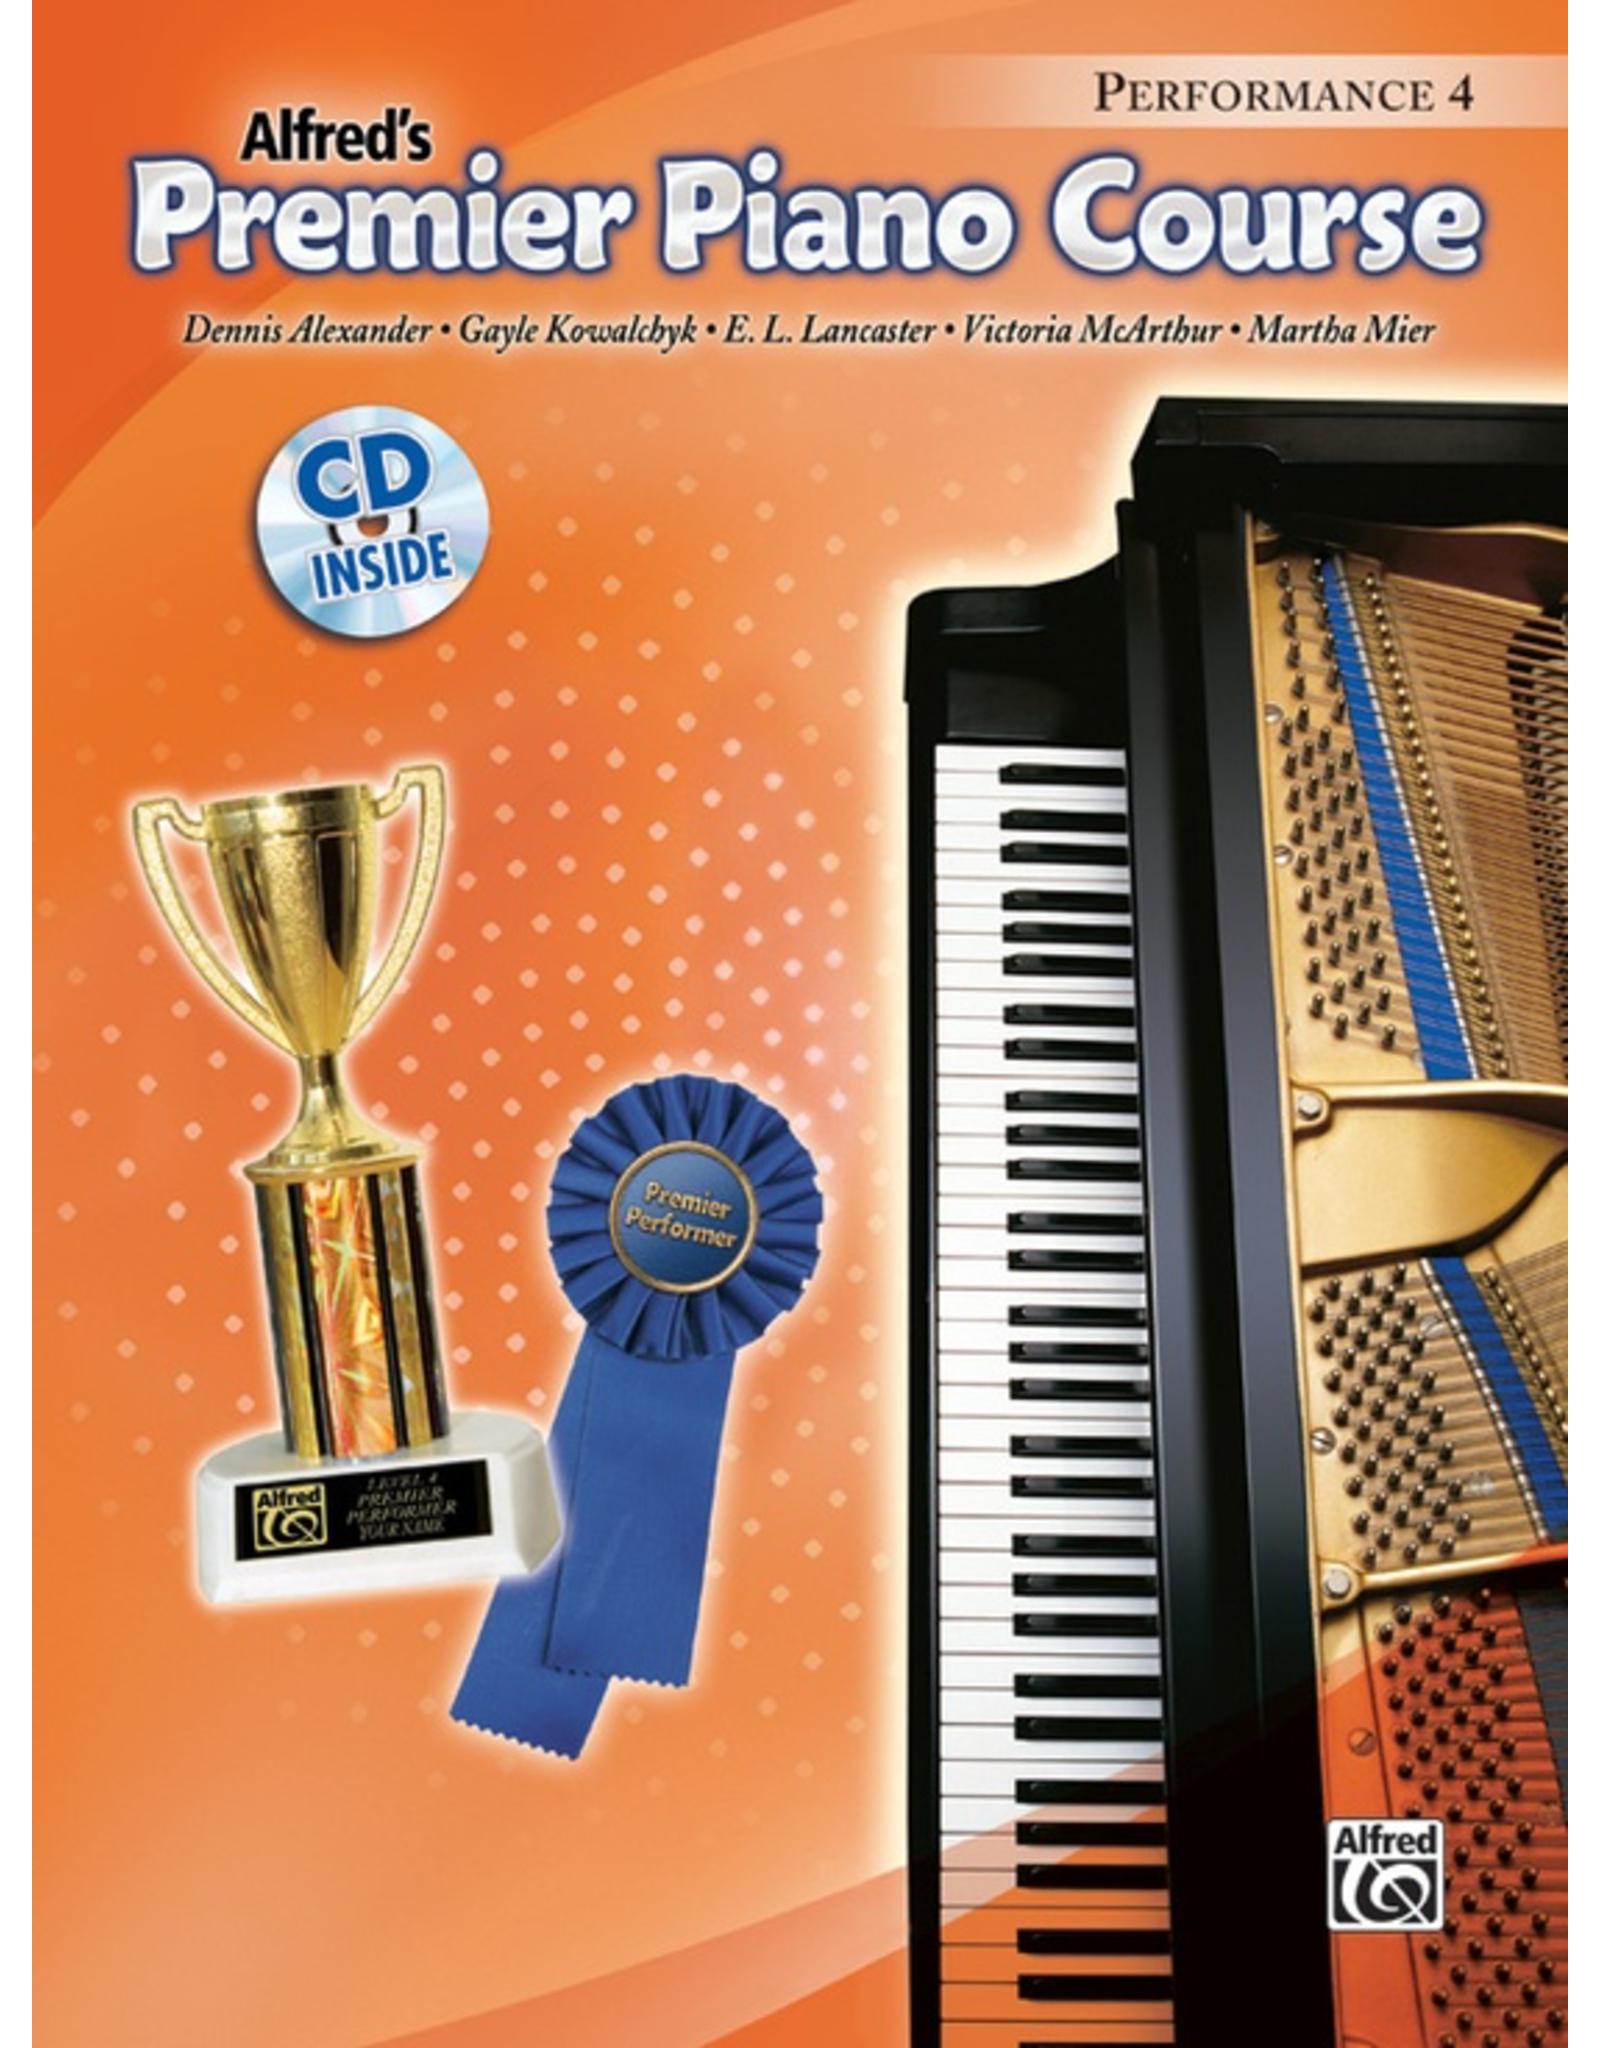 Alfred Alfred's Premier Piano Course Performance Book 4 CD Included